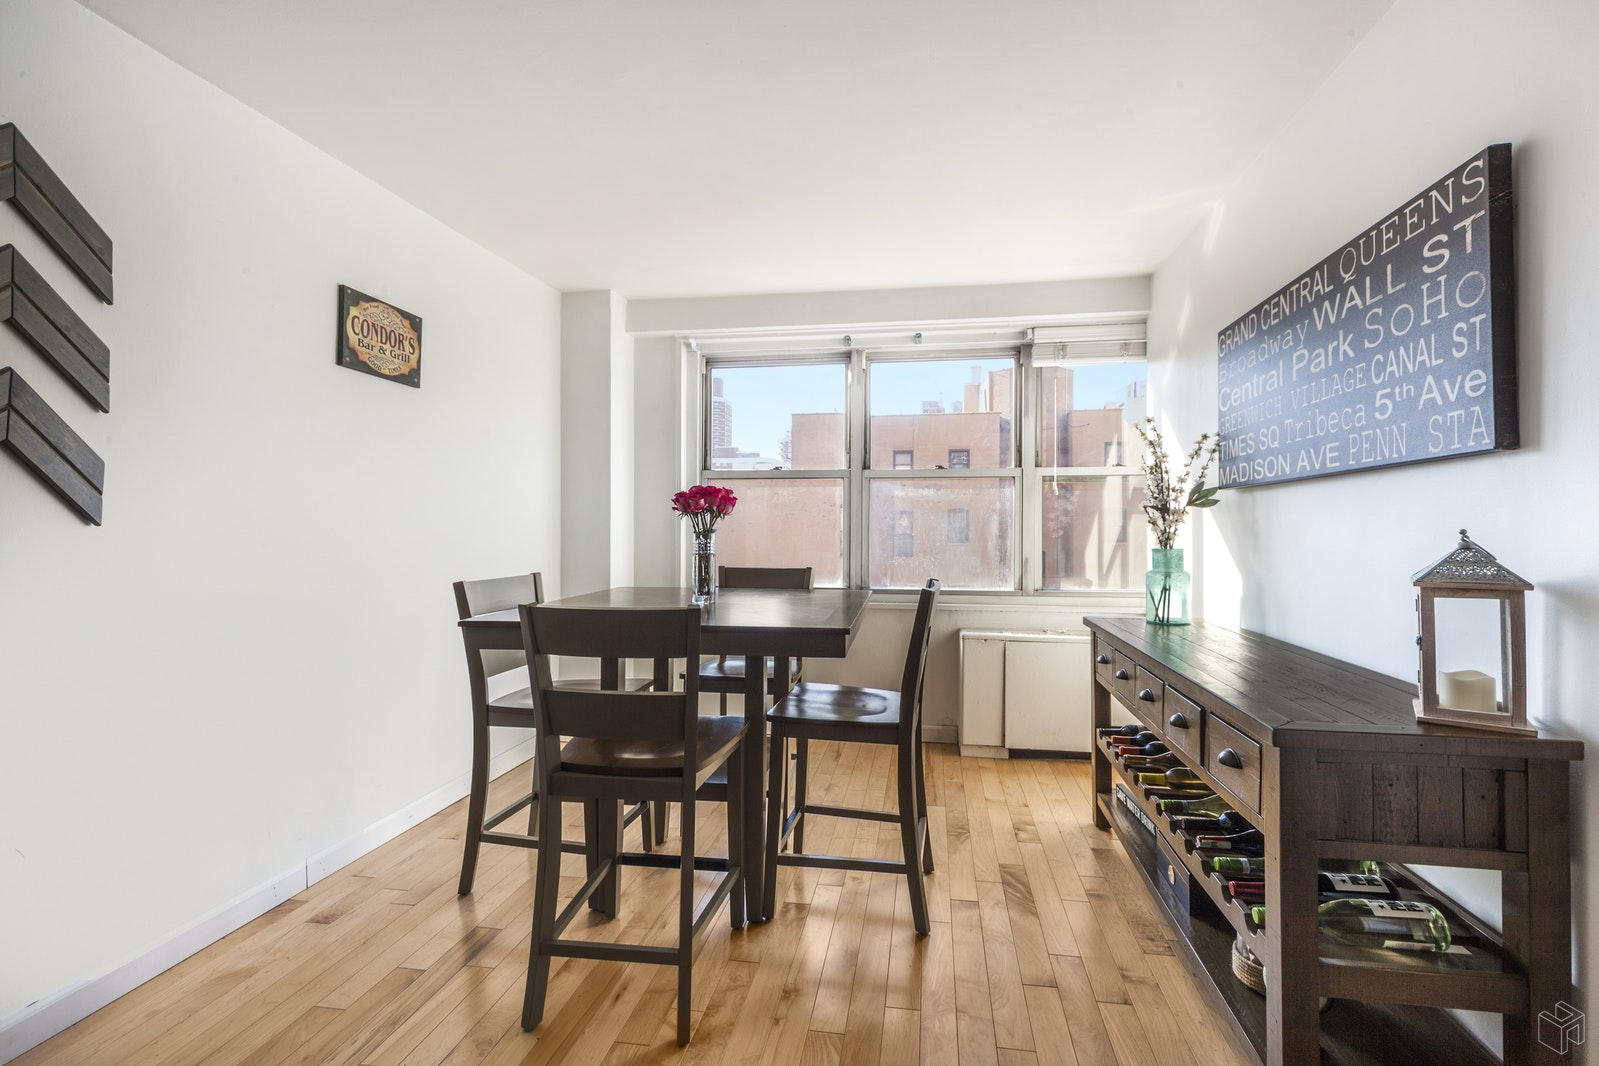 251 EAST 32ND STREET, Murray Hill Kips Bay, $0, Web #: 19389084